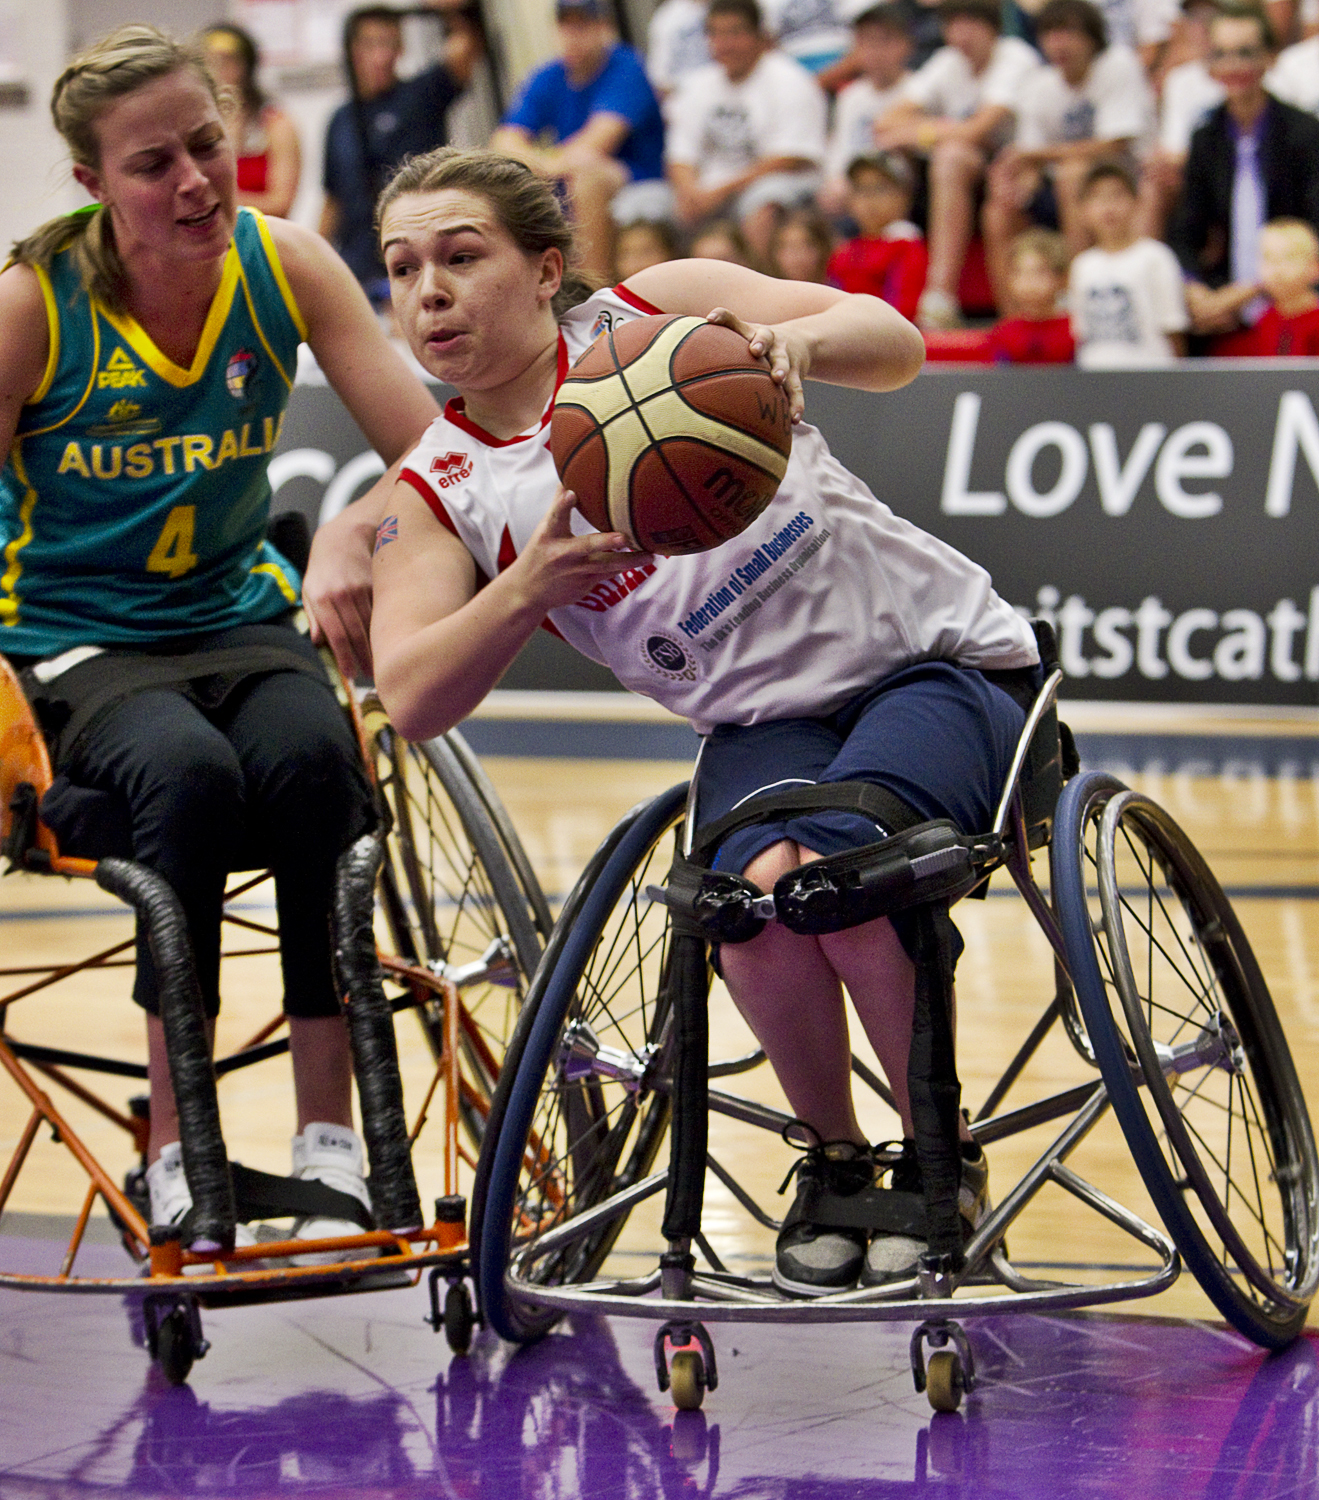 Creative Common image by Wheelchair Basketball Canada